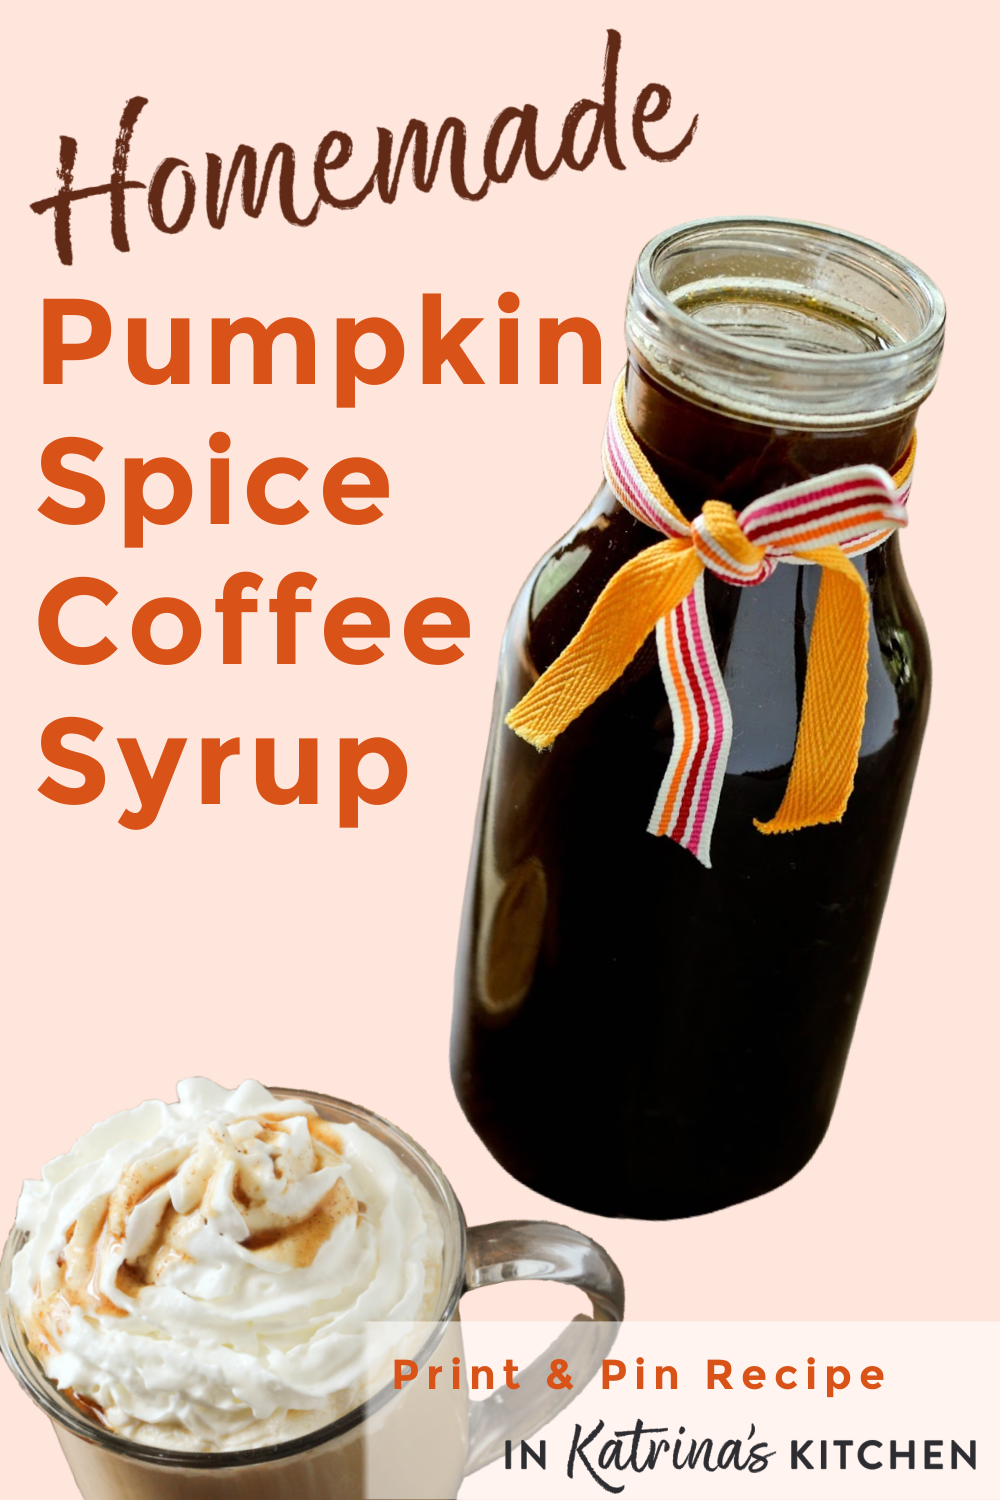 Make your own Homemade Pumpkin Spice Coffee Syrup at home and save money!! Simple recipe with 4 ingredients